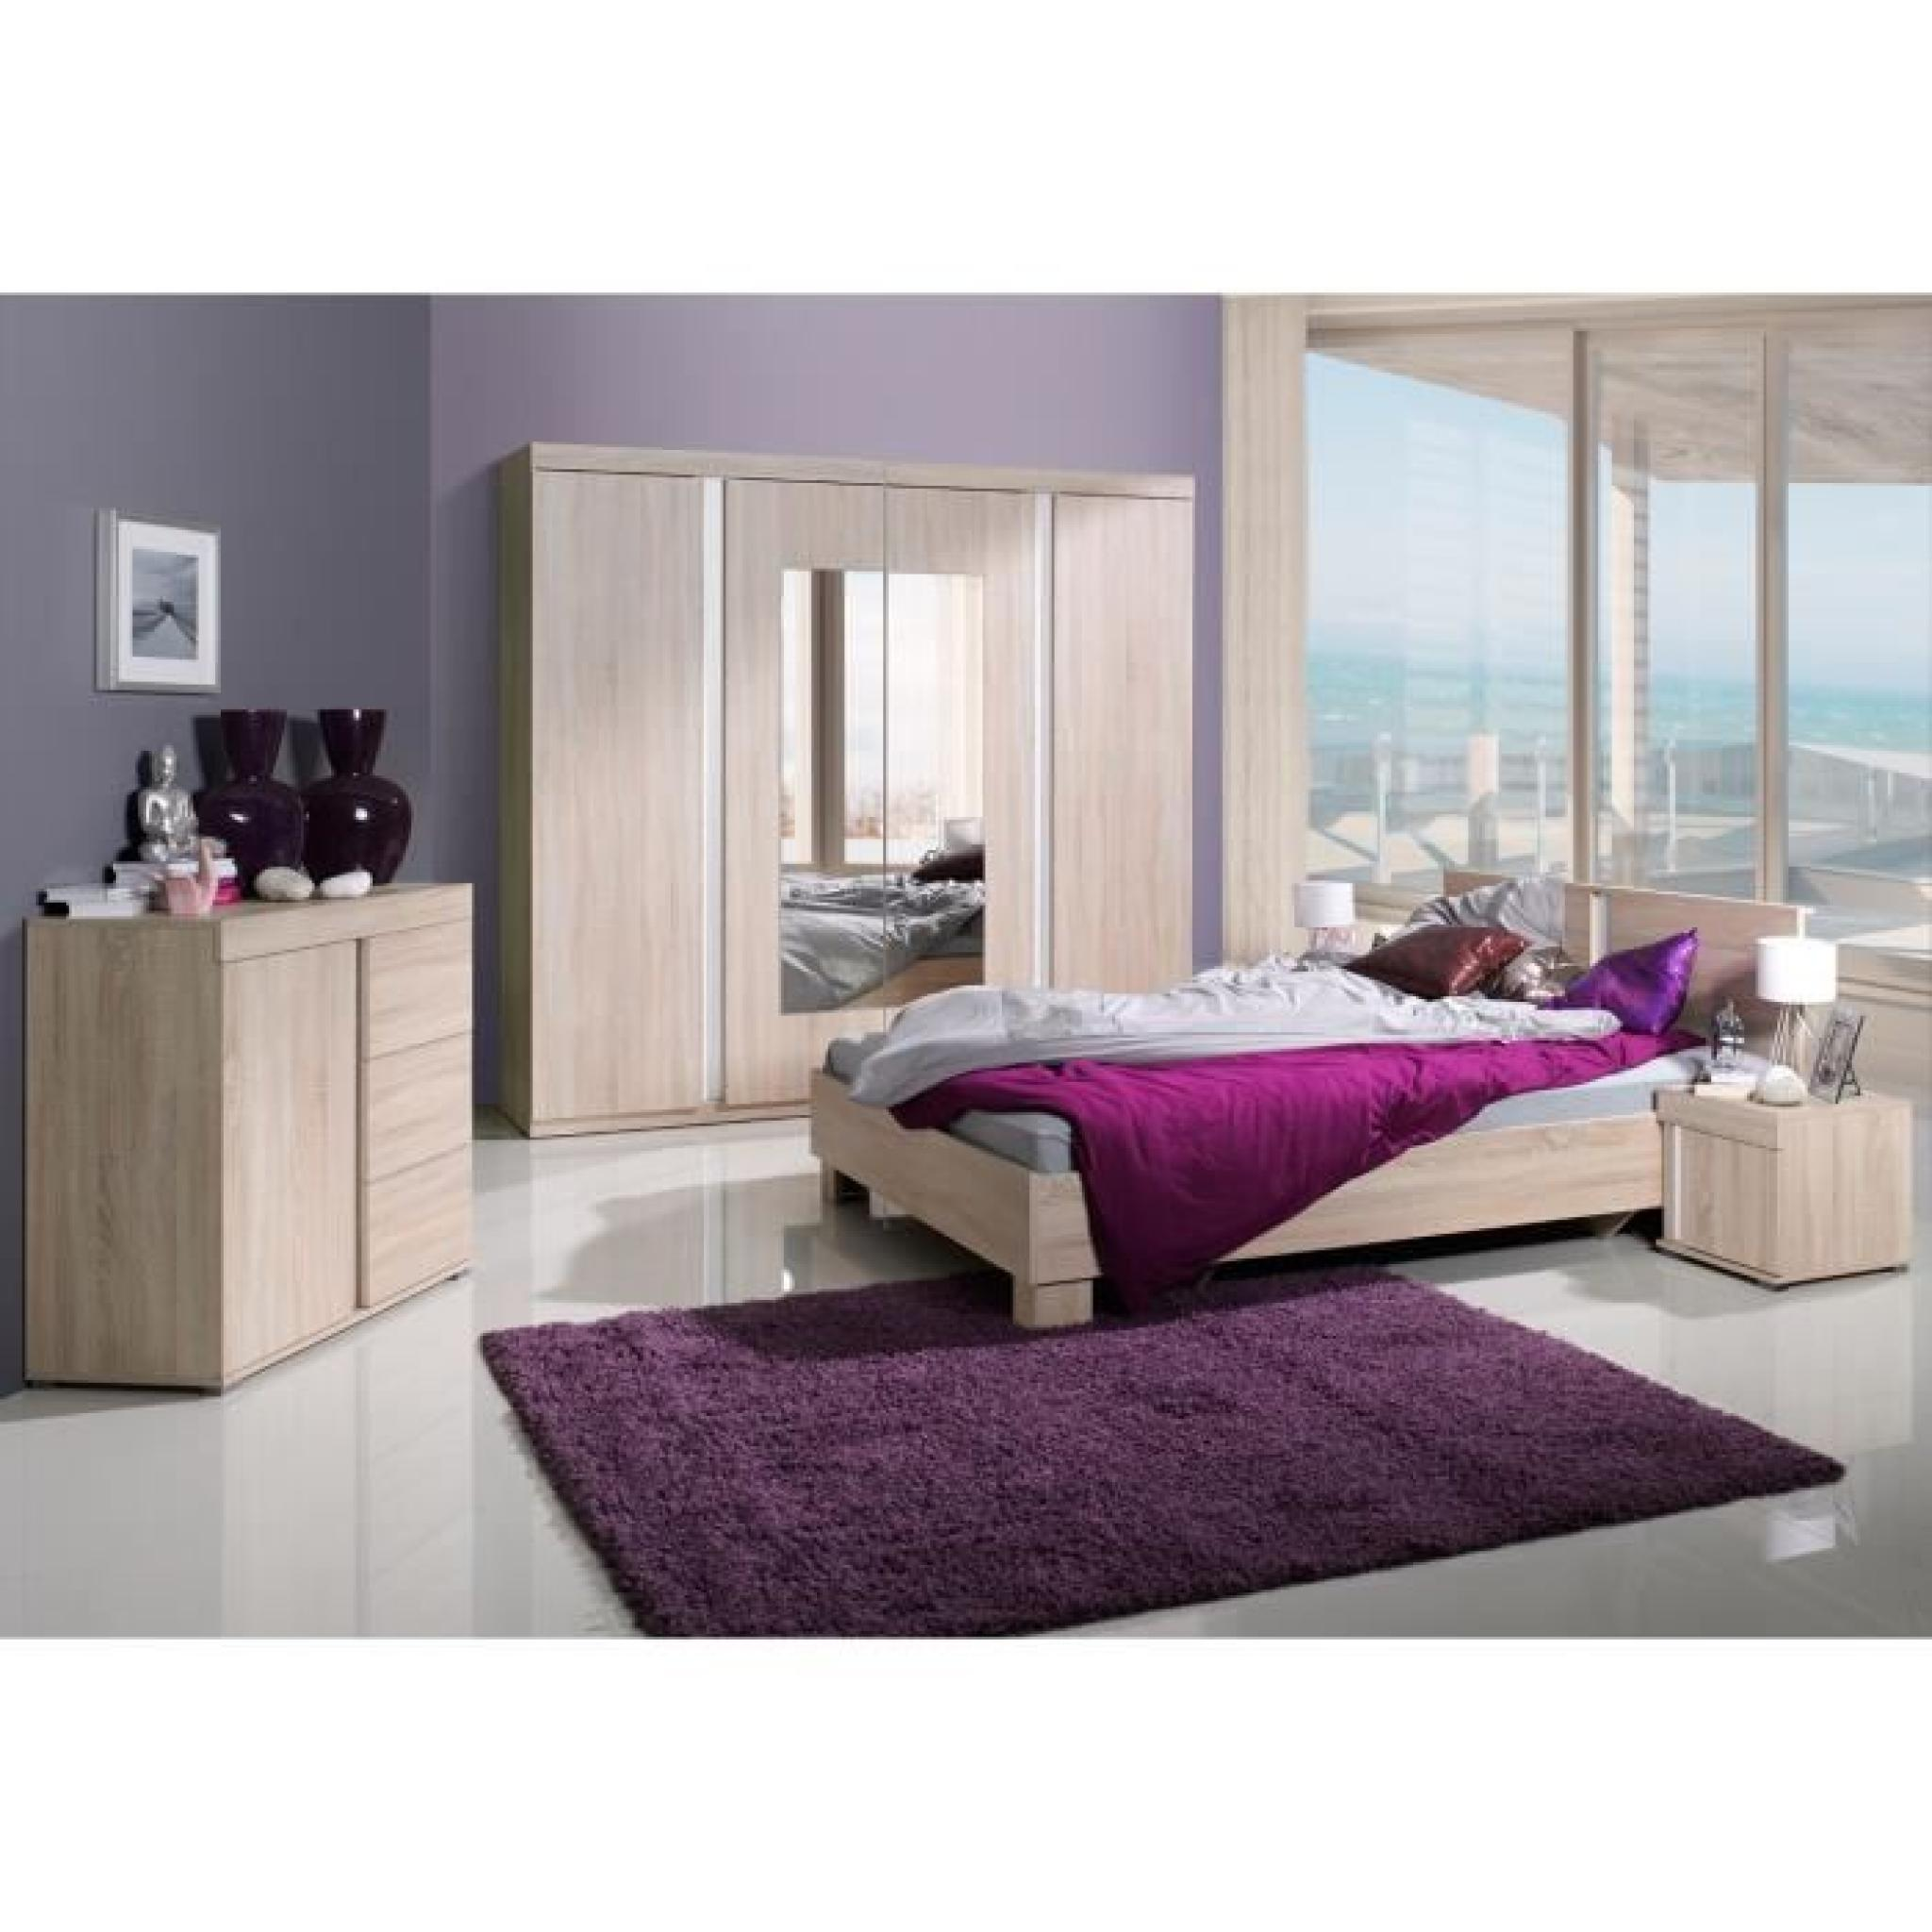 chambre coucher adulte designs lit accueil design et mobilier. Black Bedroom Furniture Sets. Home Design Ideas